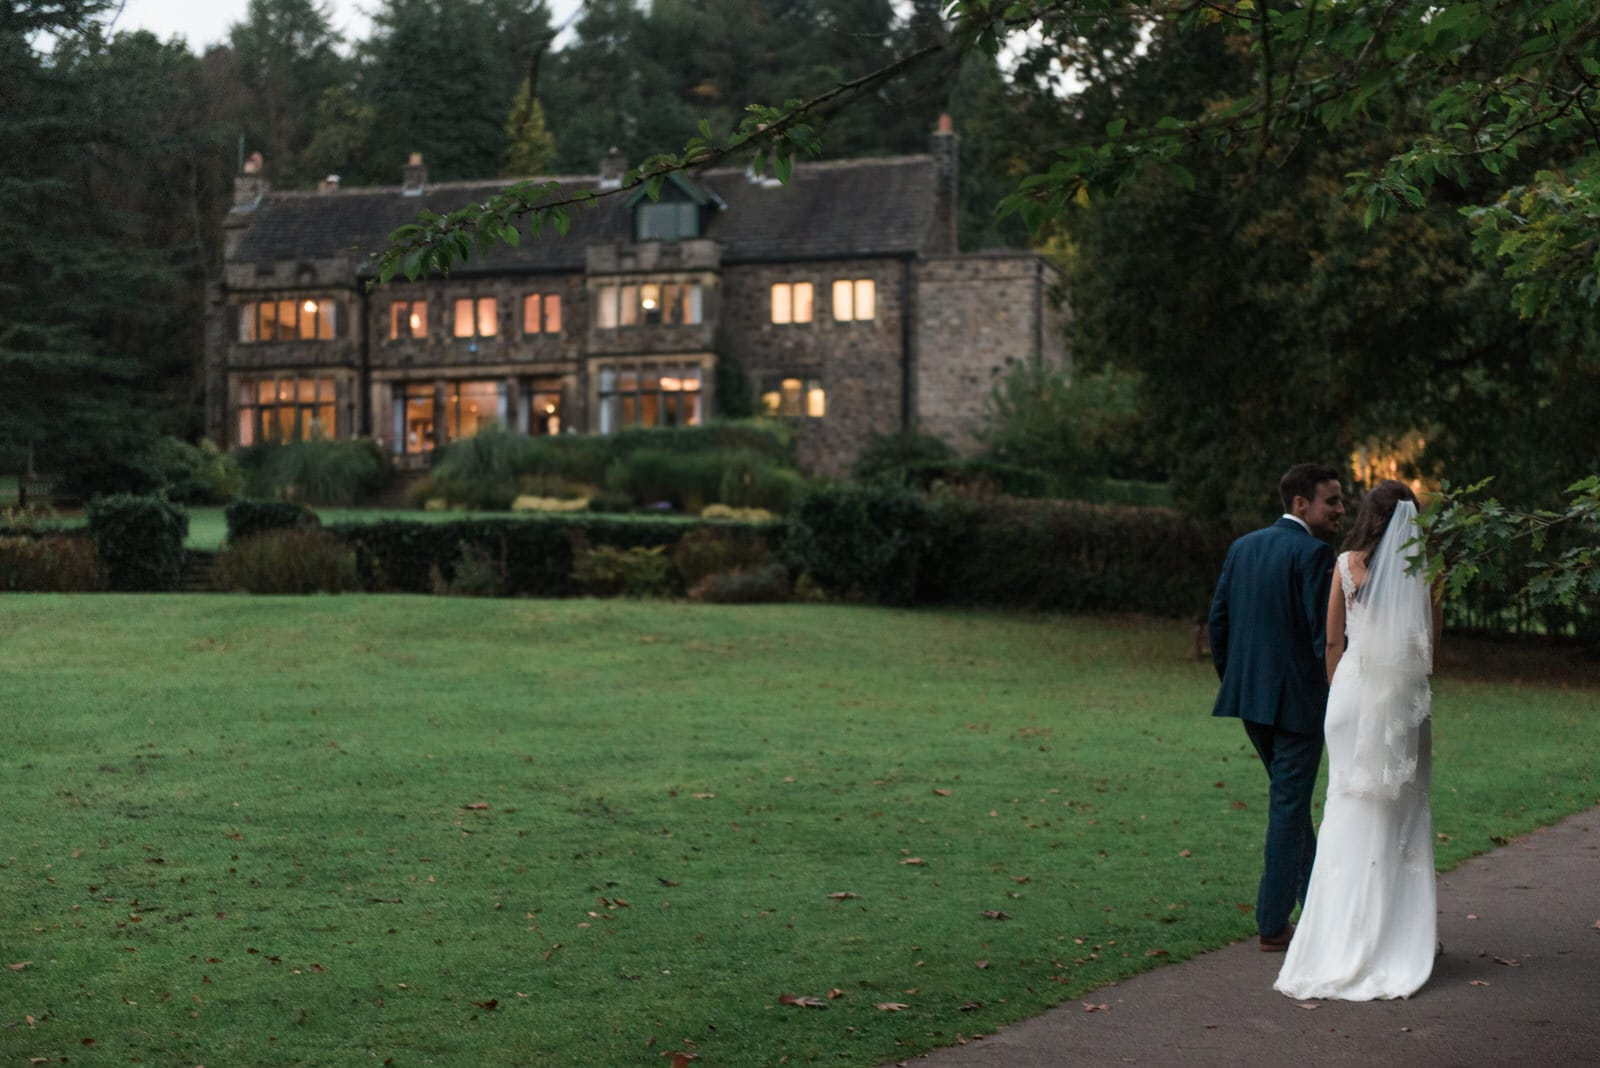 Bride and groom walking together at sunset outside Whirlowbrook Hall in Sheffield